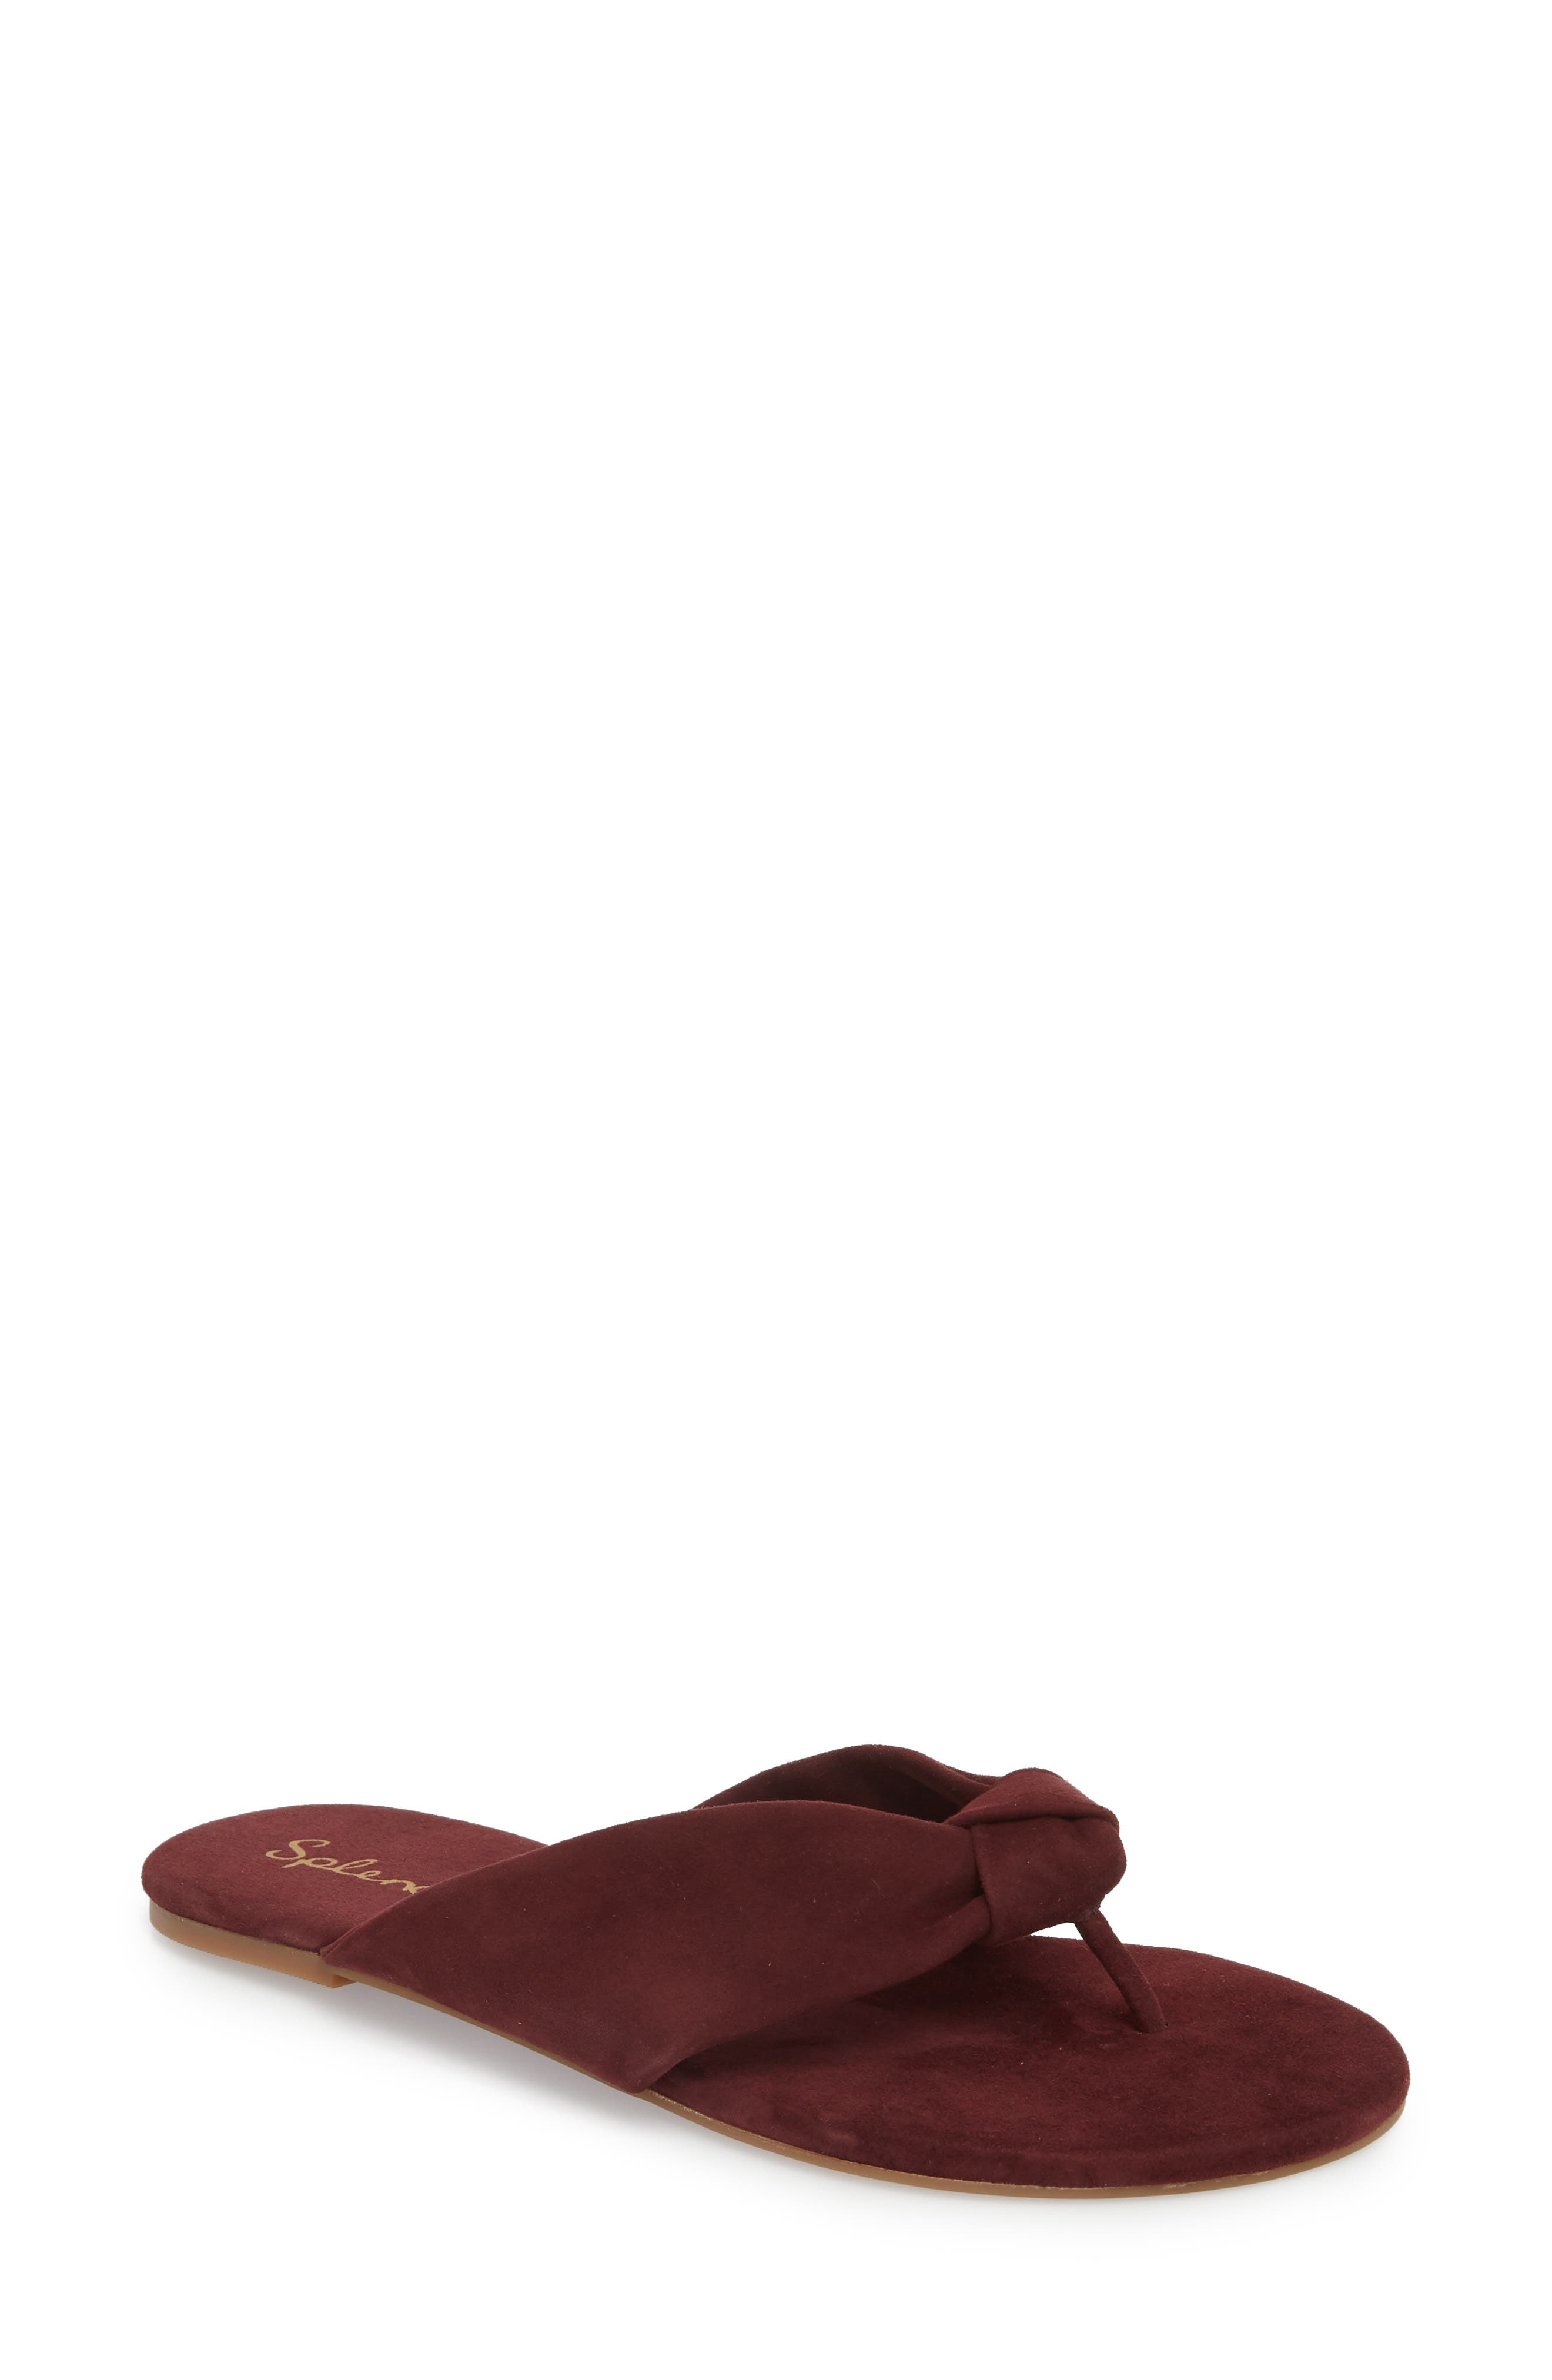 Alternate Image 1 Selected - Splendid Bridgette Knotted Flip Flop (Women)